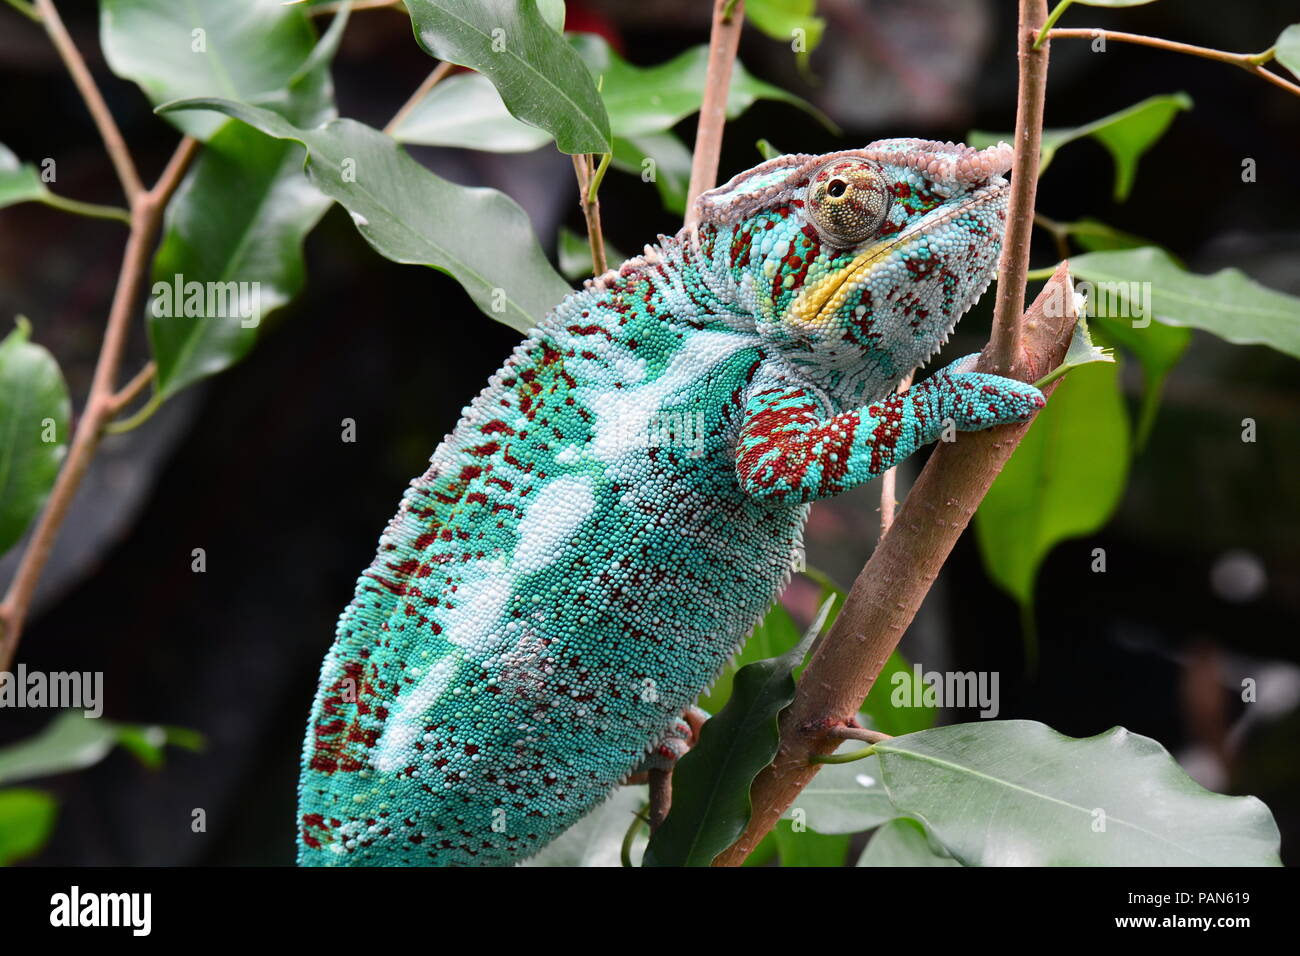 A colorful chameleon walks around its environment showing off its beauty. Stock Photo